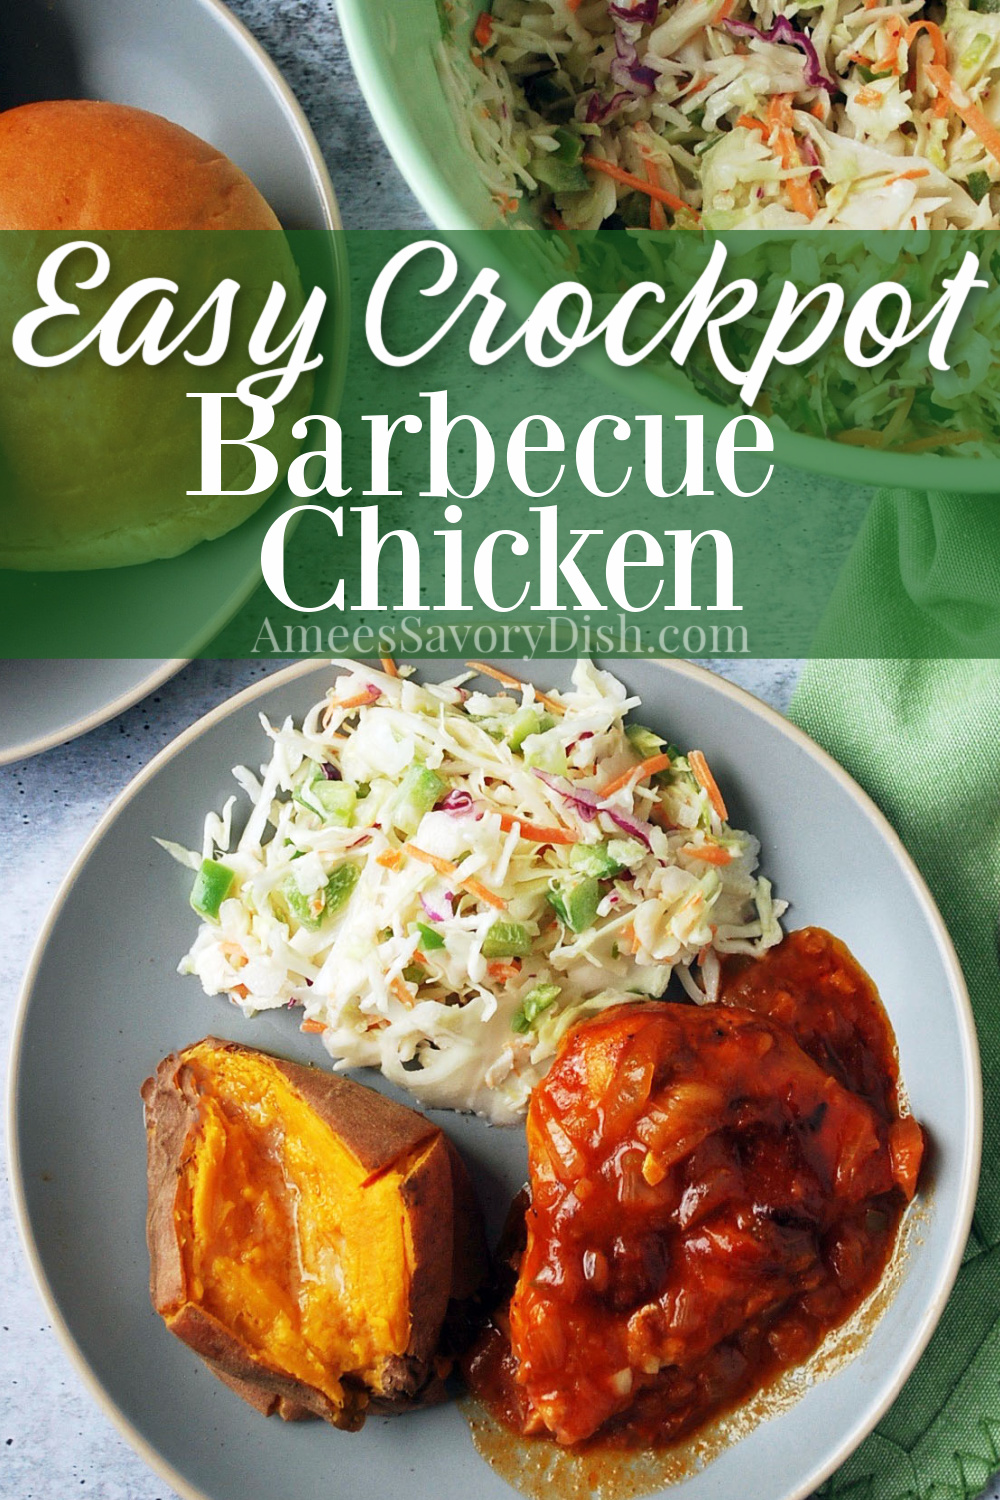 A flavorful recipe for Crockpot BBQ chicken that cooks while you go about your day!  Serve as pulled BBQ chicken or whole with your favorite sides. #crockpotBBQchicken #bbqchicken #crockpotchicken #barbecuechicken #easyhealthymeals #chickenrecipe #slowcookerbbq via @Ameessavorydish